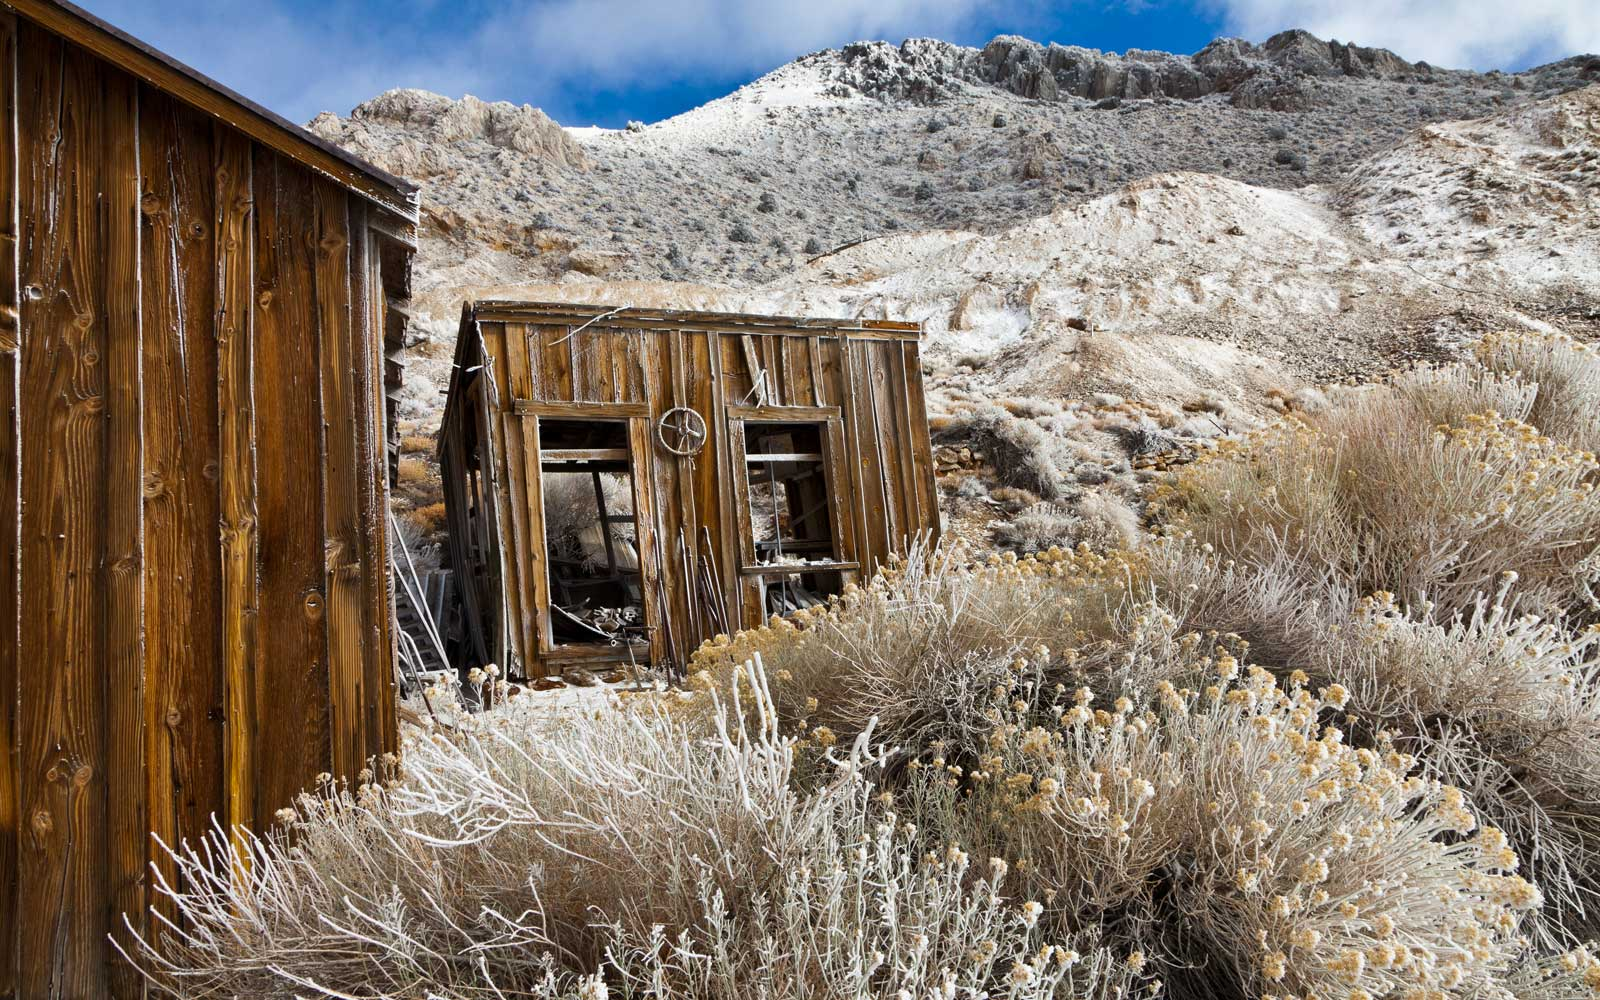 Structures in a high altitude ghost mining town (Ag-Pb-Zn).